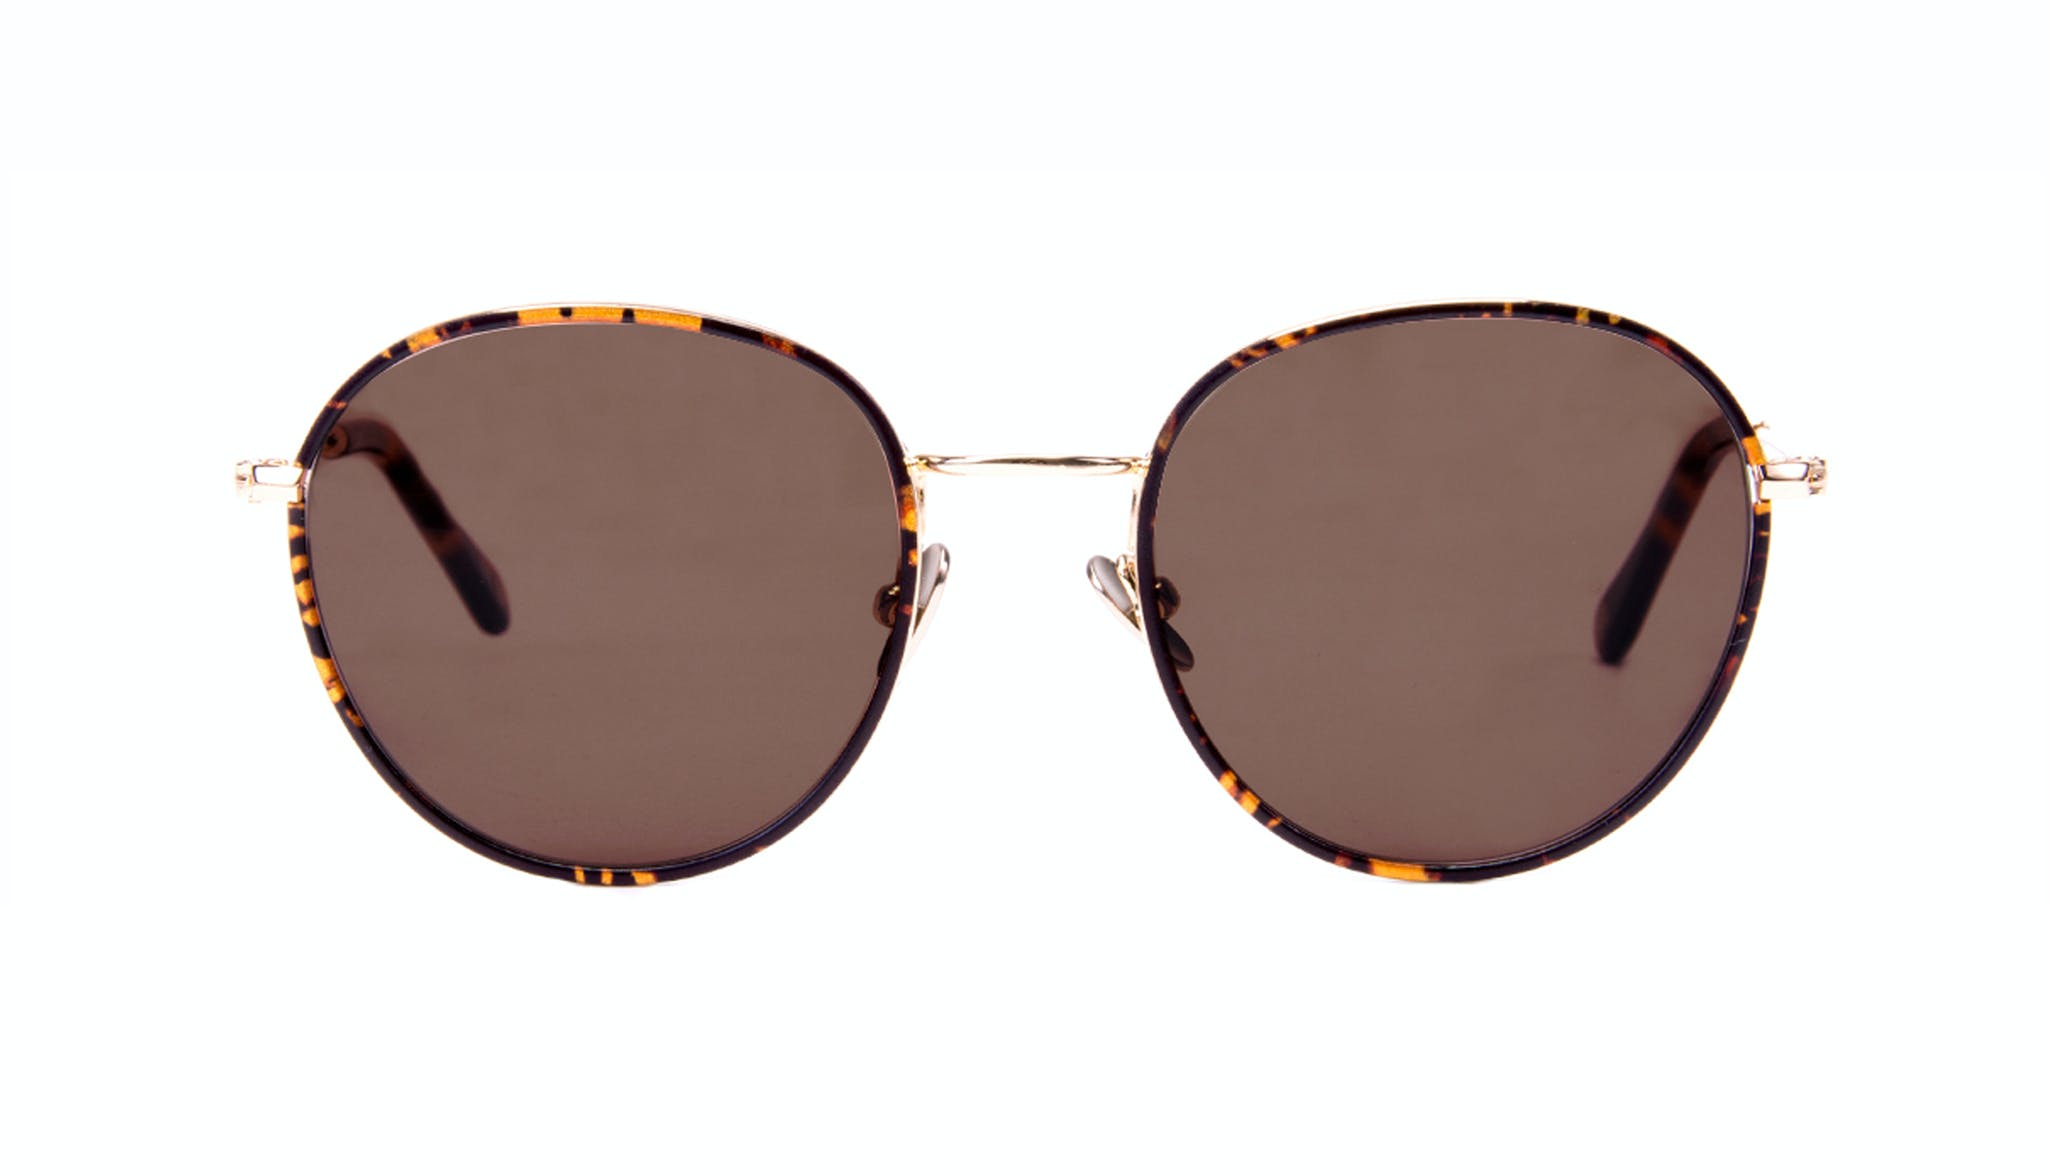 Affordable Fashion Glasses Aviator Round Sunglasses Women Subrosa Fauve Front